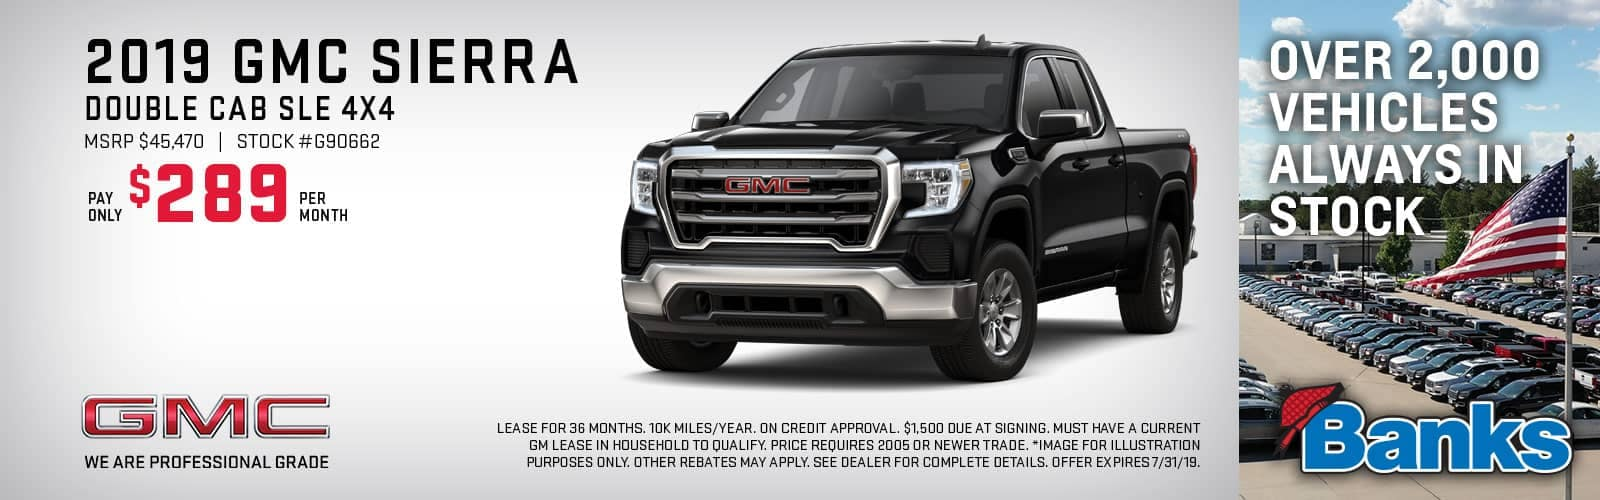 Banner of GMC Sierra Double Cab 4x4 for July Special